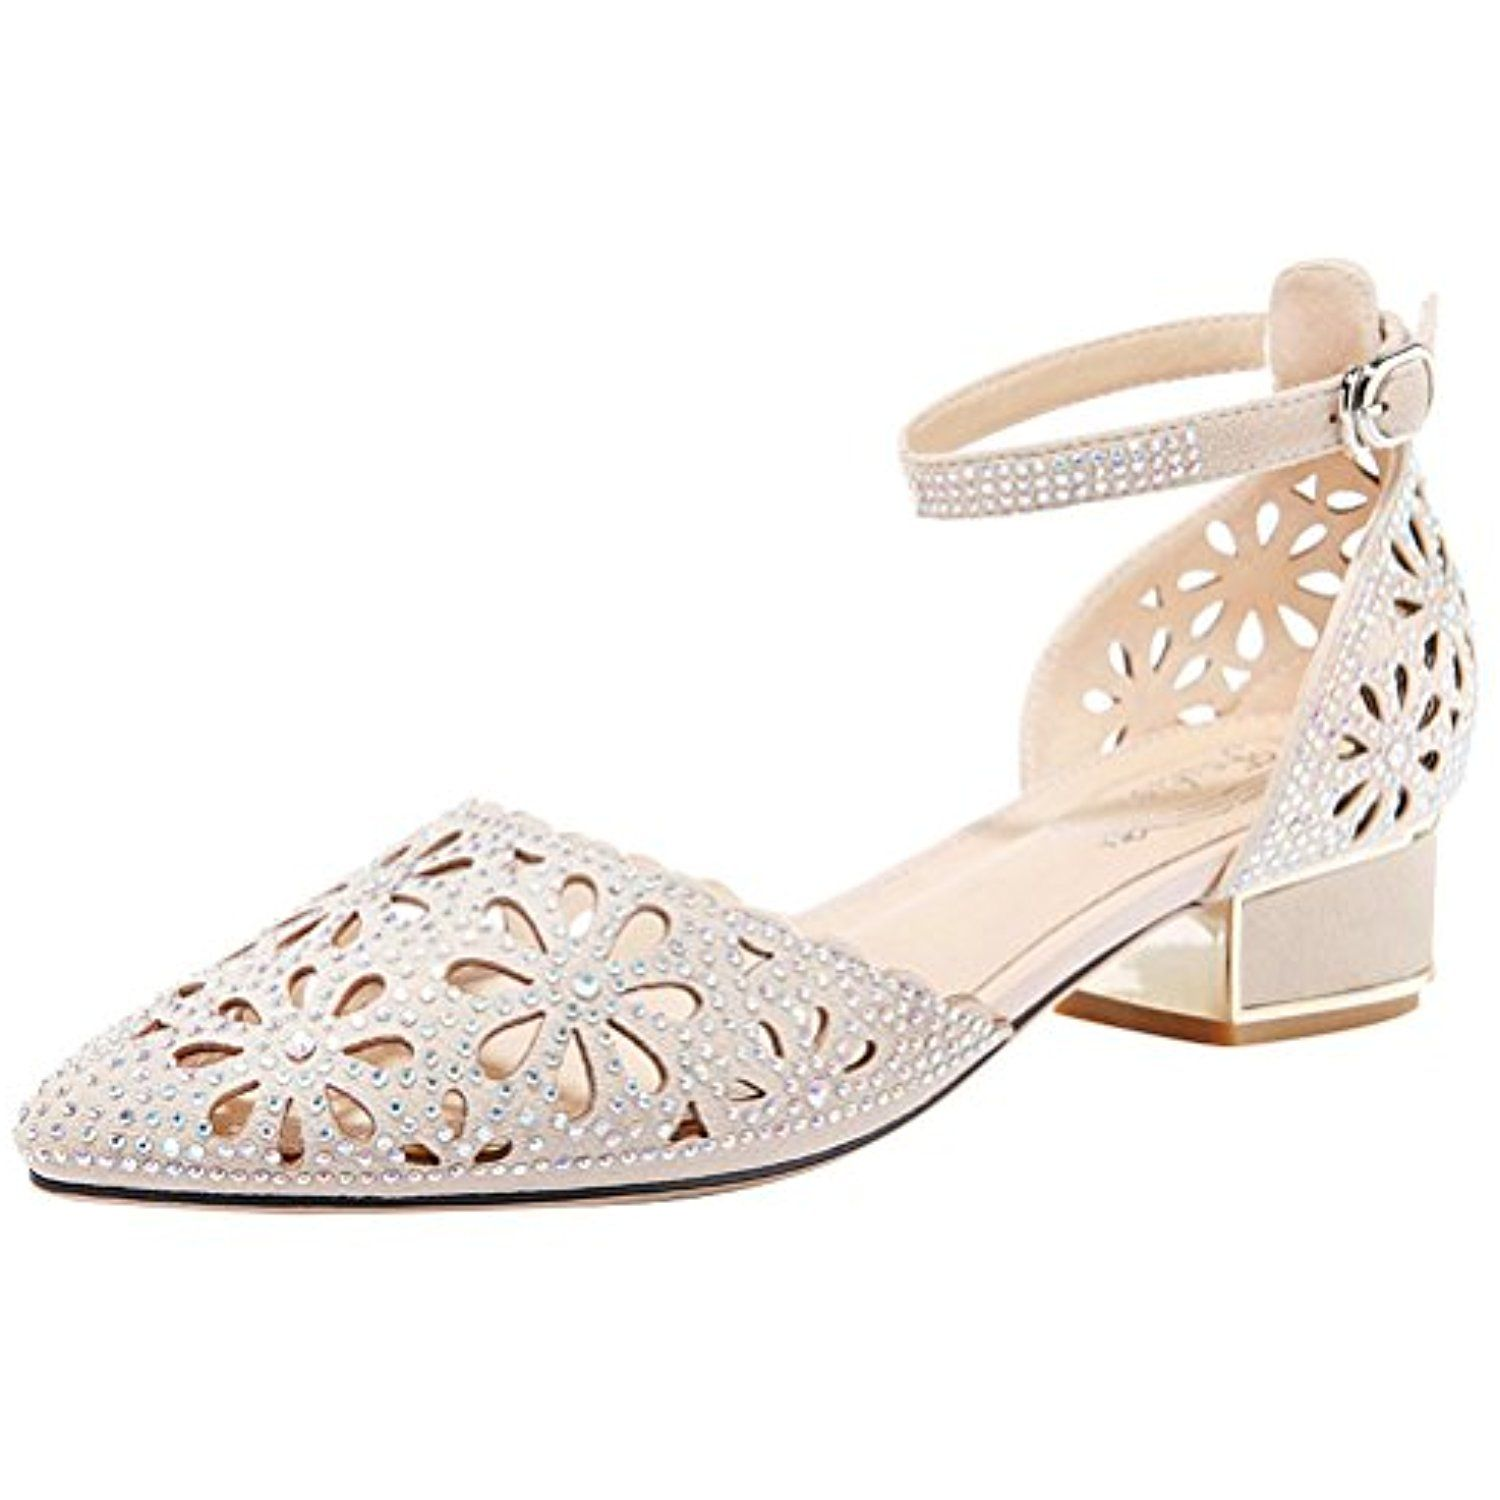 4cf5844b3be Womens Comfort Pointed Toe Cutout Hollow Out Rhinestones Ankle Strap Low  Heel Pumps     More info could be found at the image url.